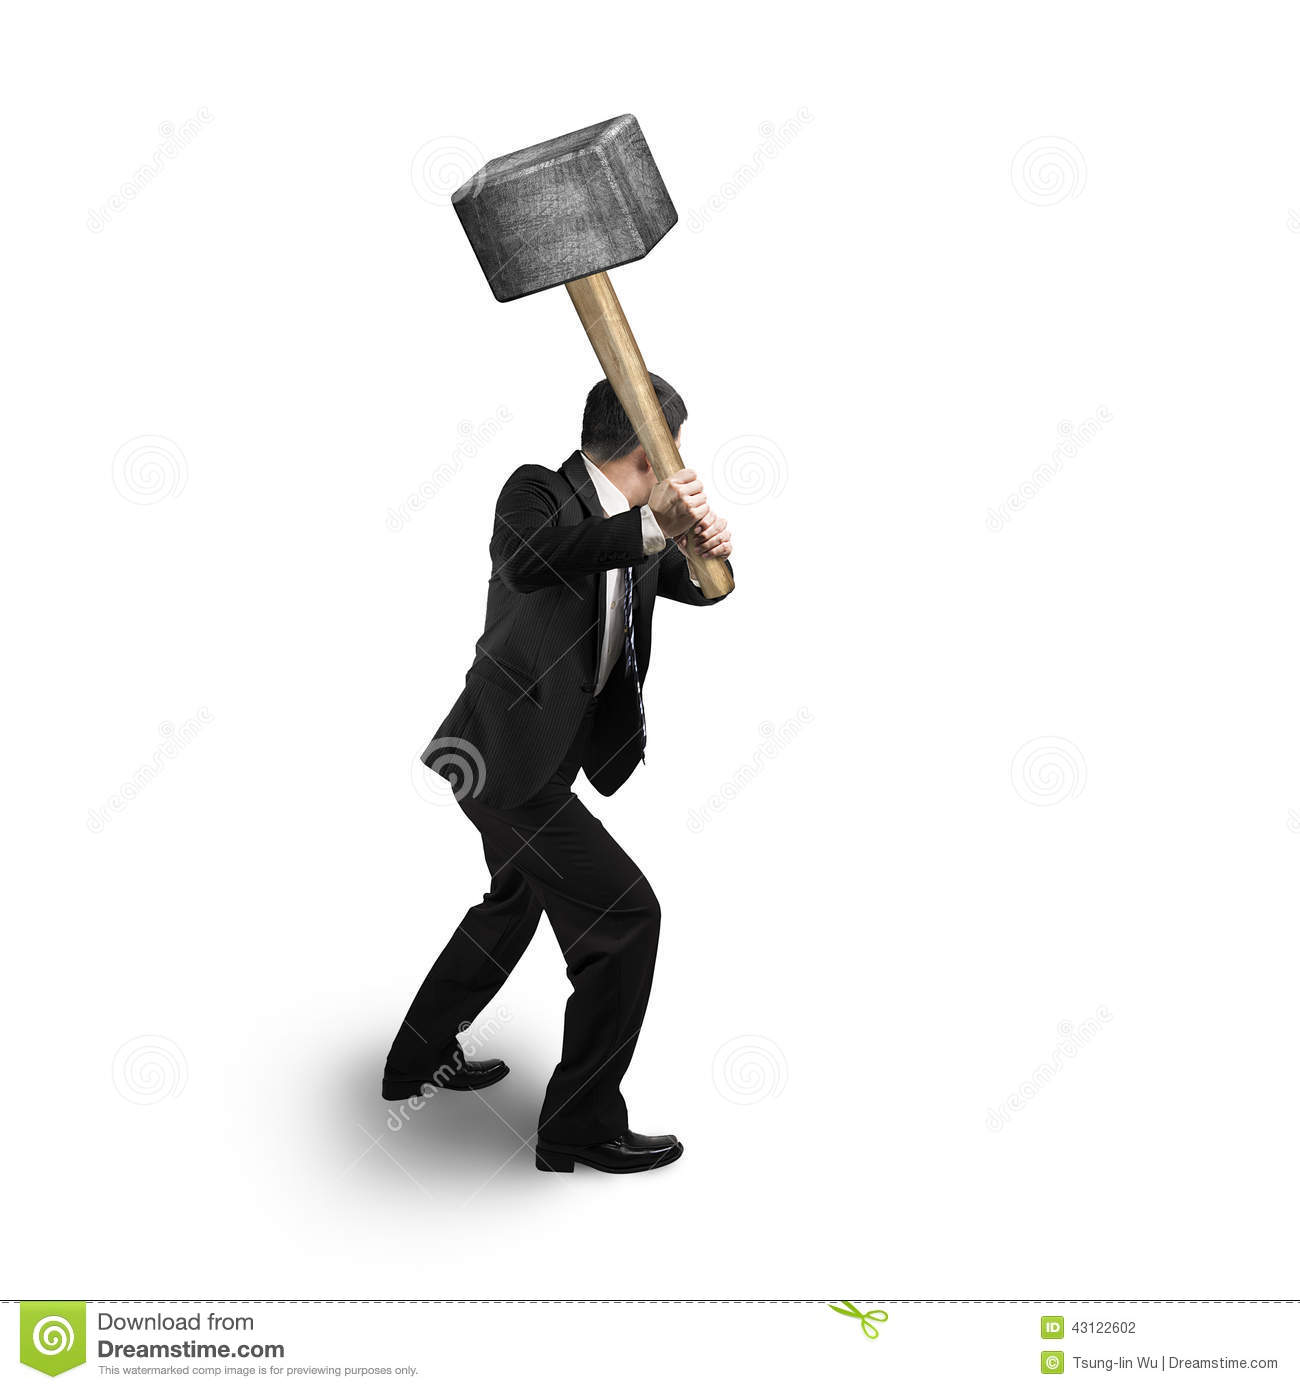 1911 dissassemby/assembly tools Businessman-holding-big-hammer-white-background-43122602